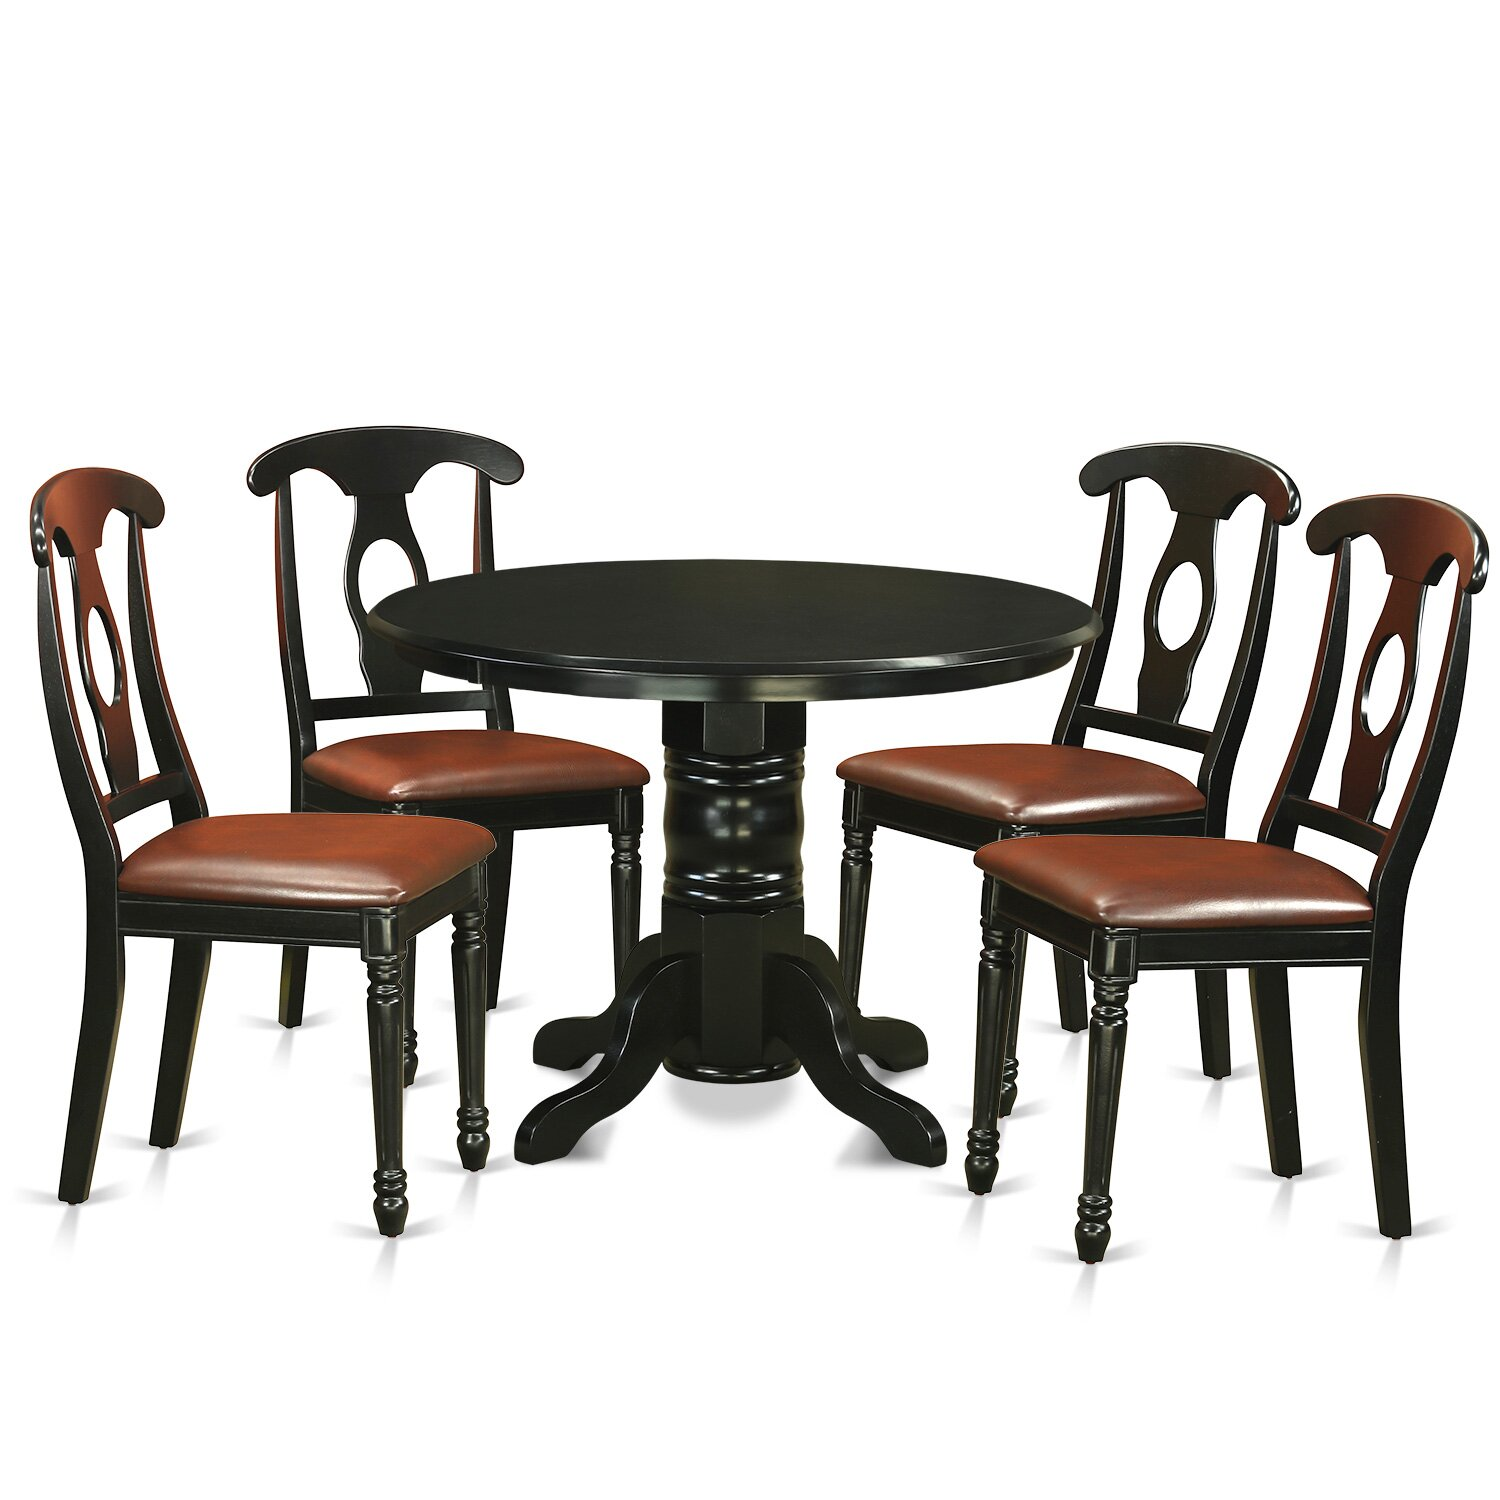 East west shelton 5 piece dining set reviews wayfair for Kitchen dining room chairs